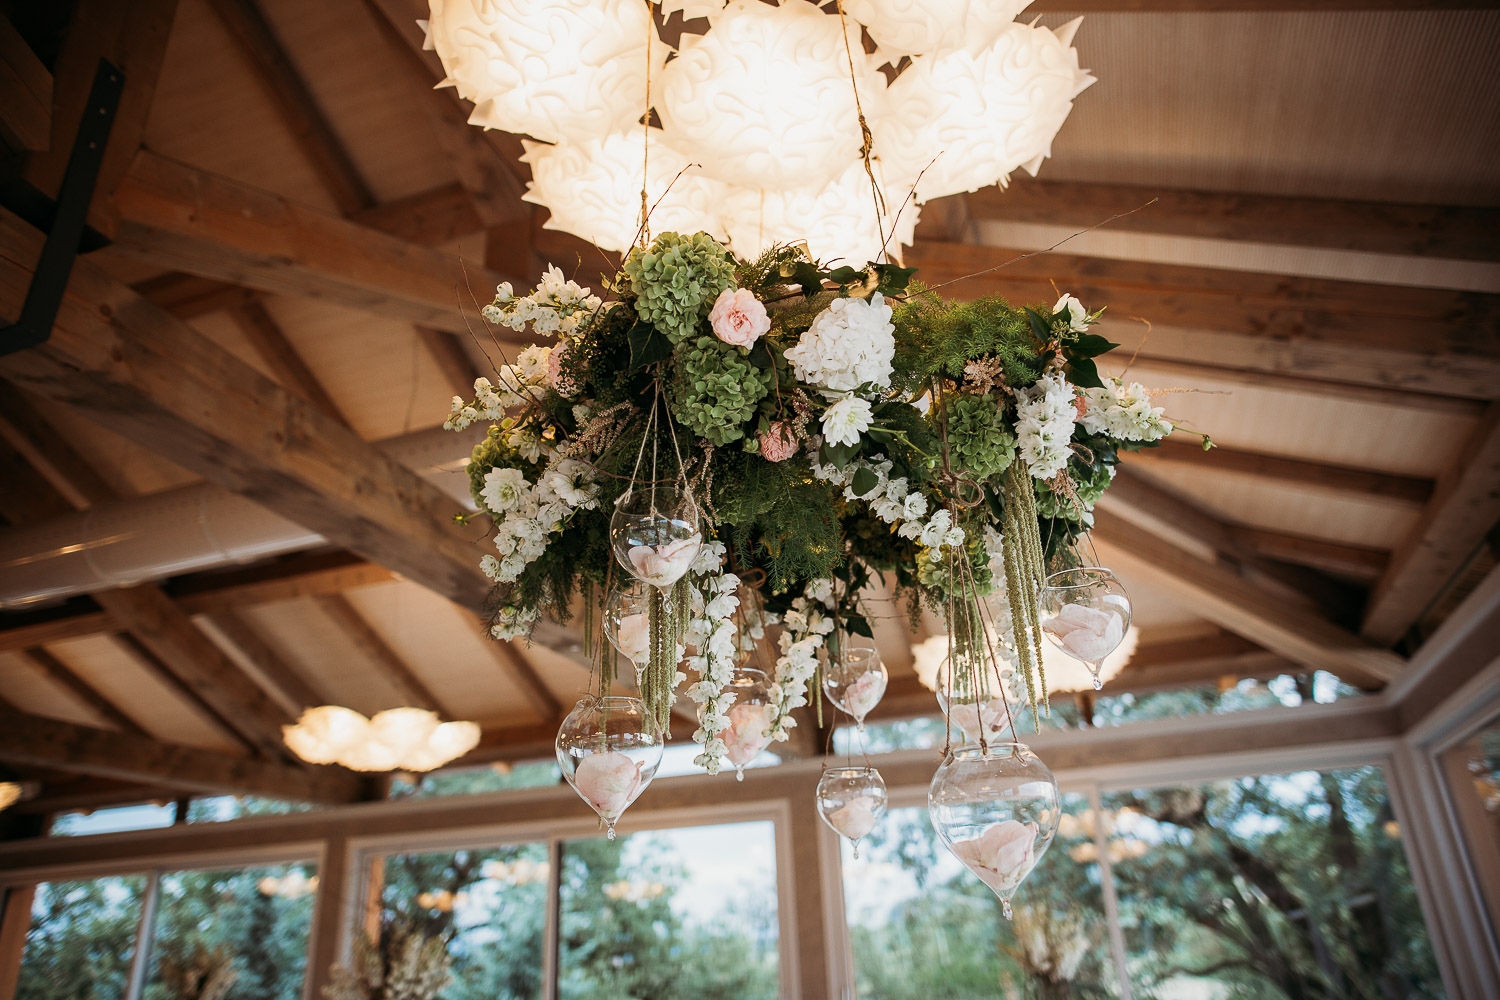 Suspended centerpiece above the wedding table at Tenuta Carretta, Italy